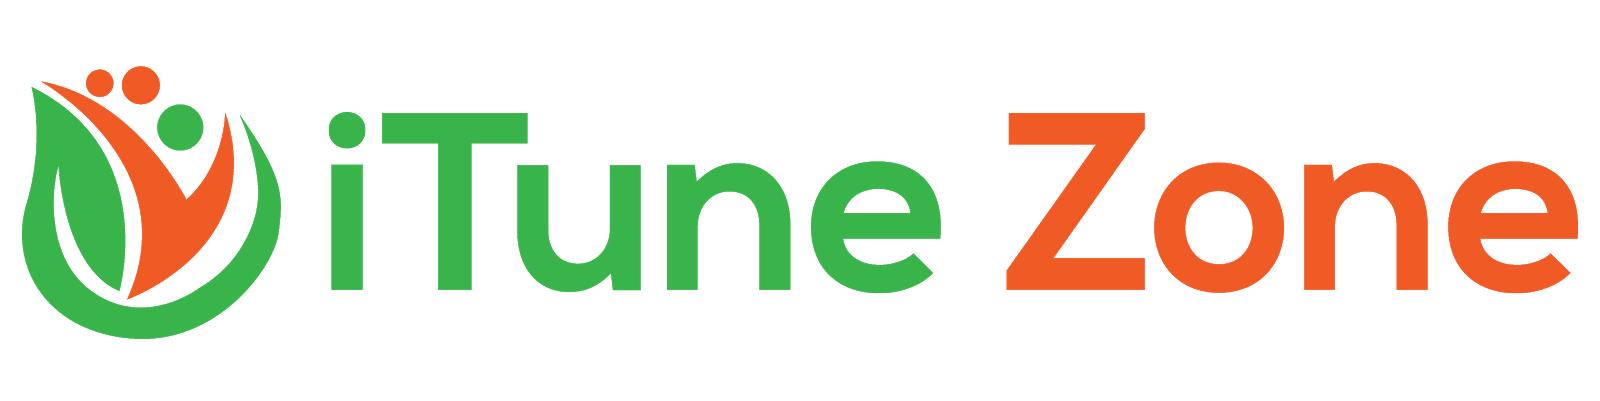 iTune Zone | Mobile Phone Price In Bangladesh